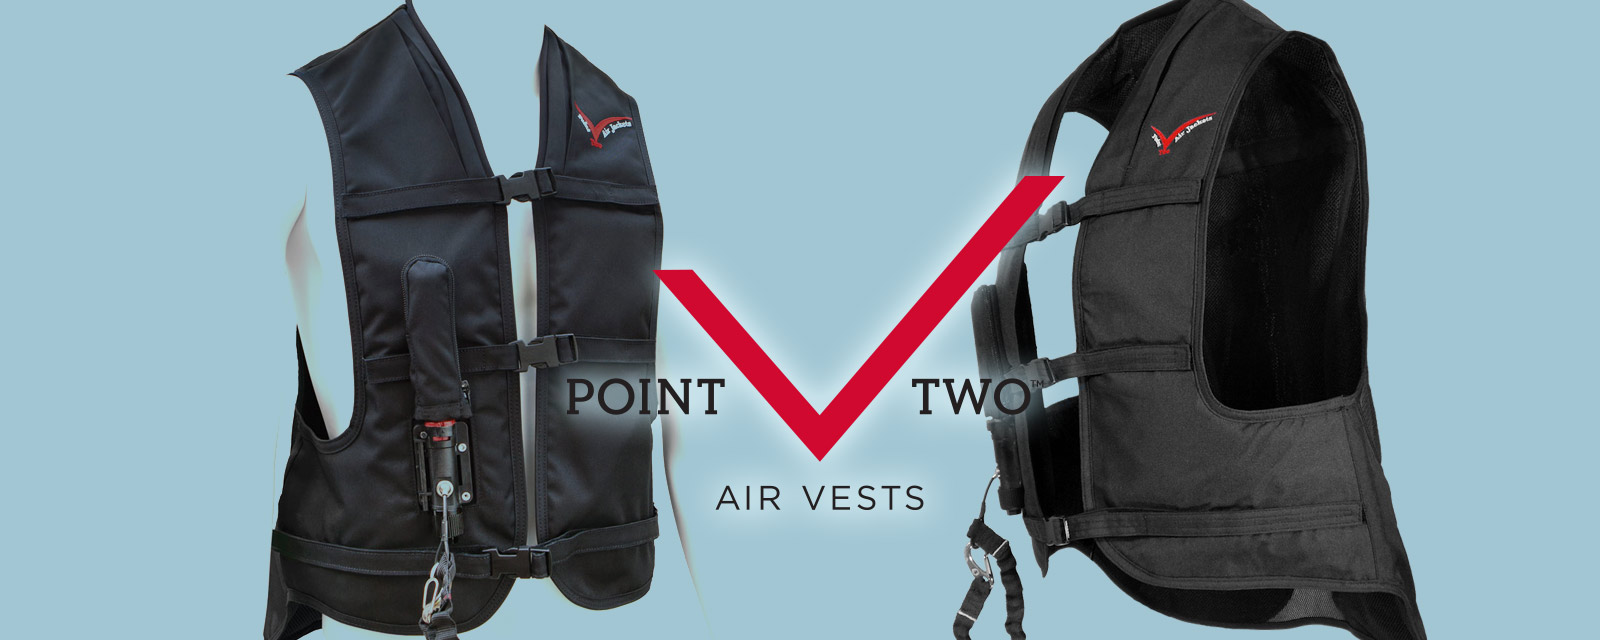 Point Two ProAir Safety Vests for Competition & Riding at Home